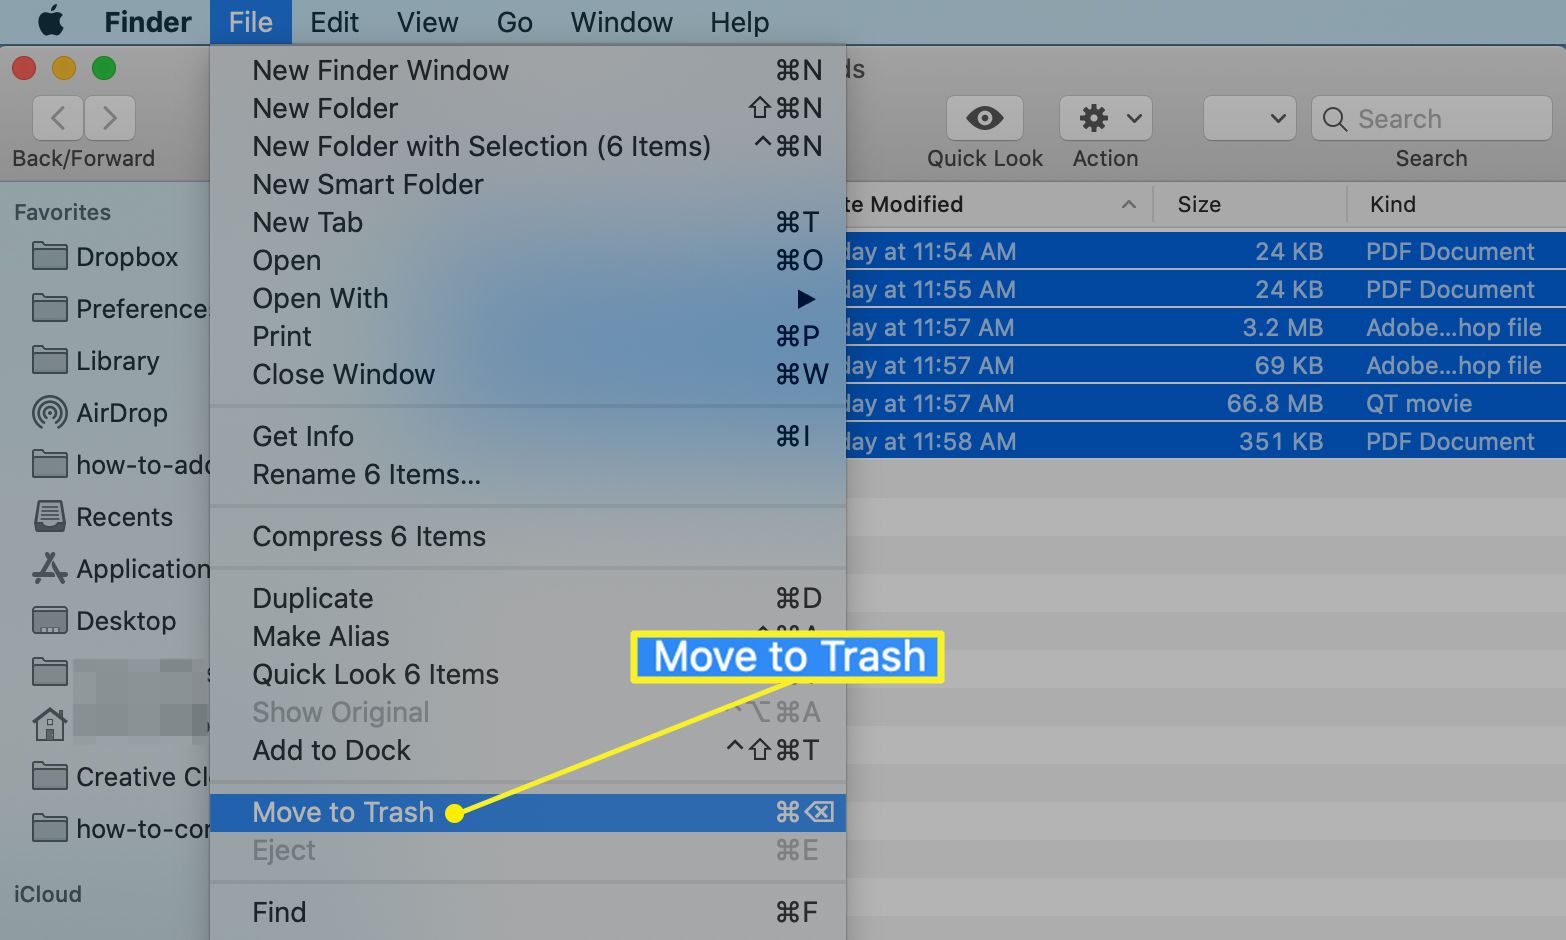 Finder File menu with Move to Trash selected